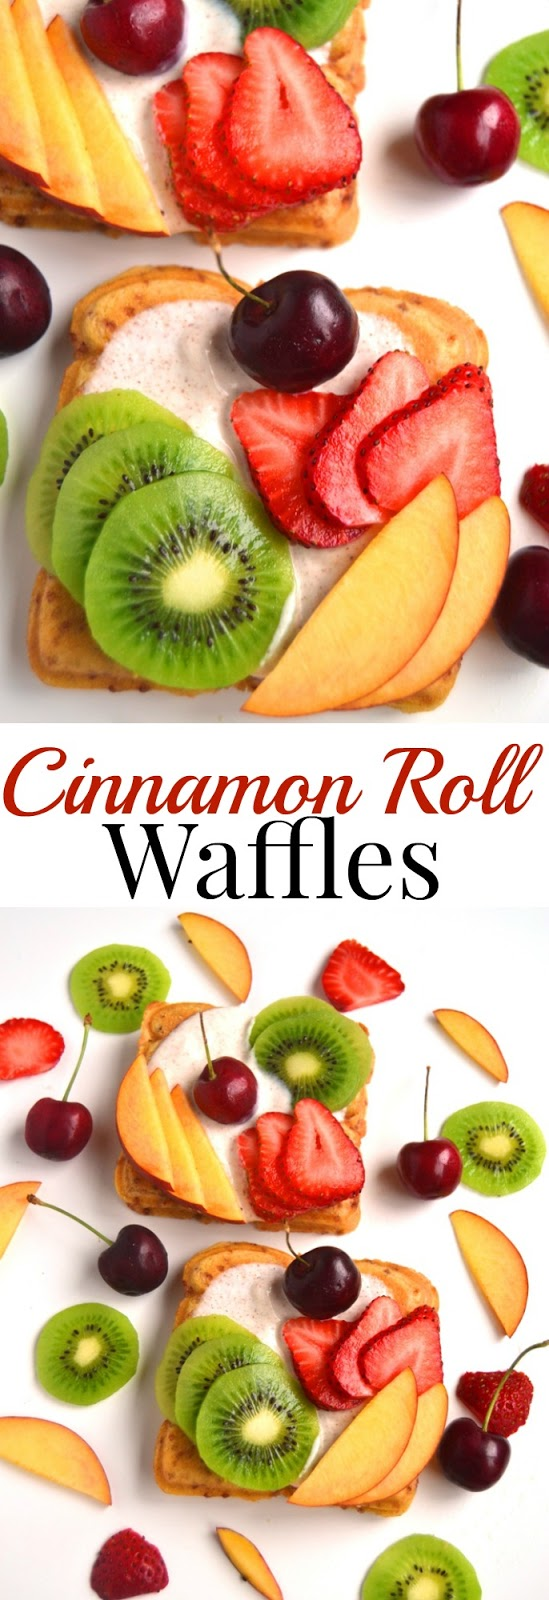 Cinnamon Roll Waffles take 5 minutes to make and are loaded with sweet cinnamon Greek yogurt and topped with fresh fruit for an easy breakfast! www.nutritionistreviews.com